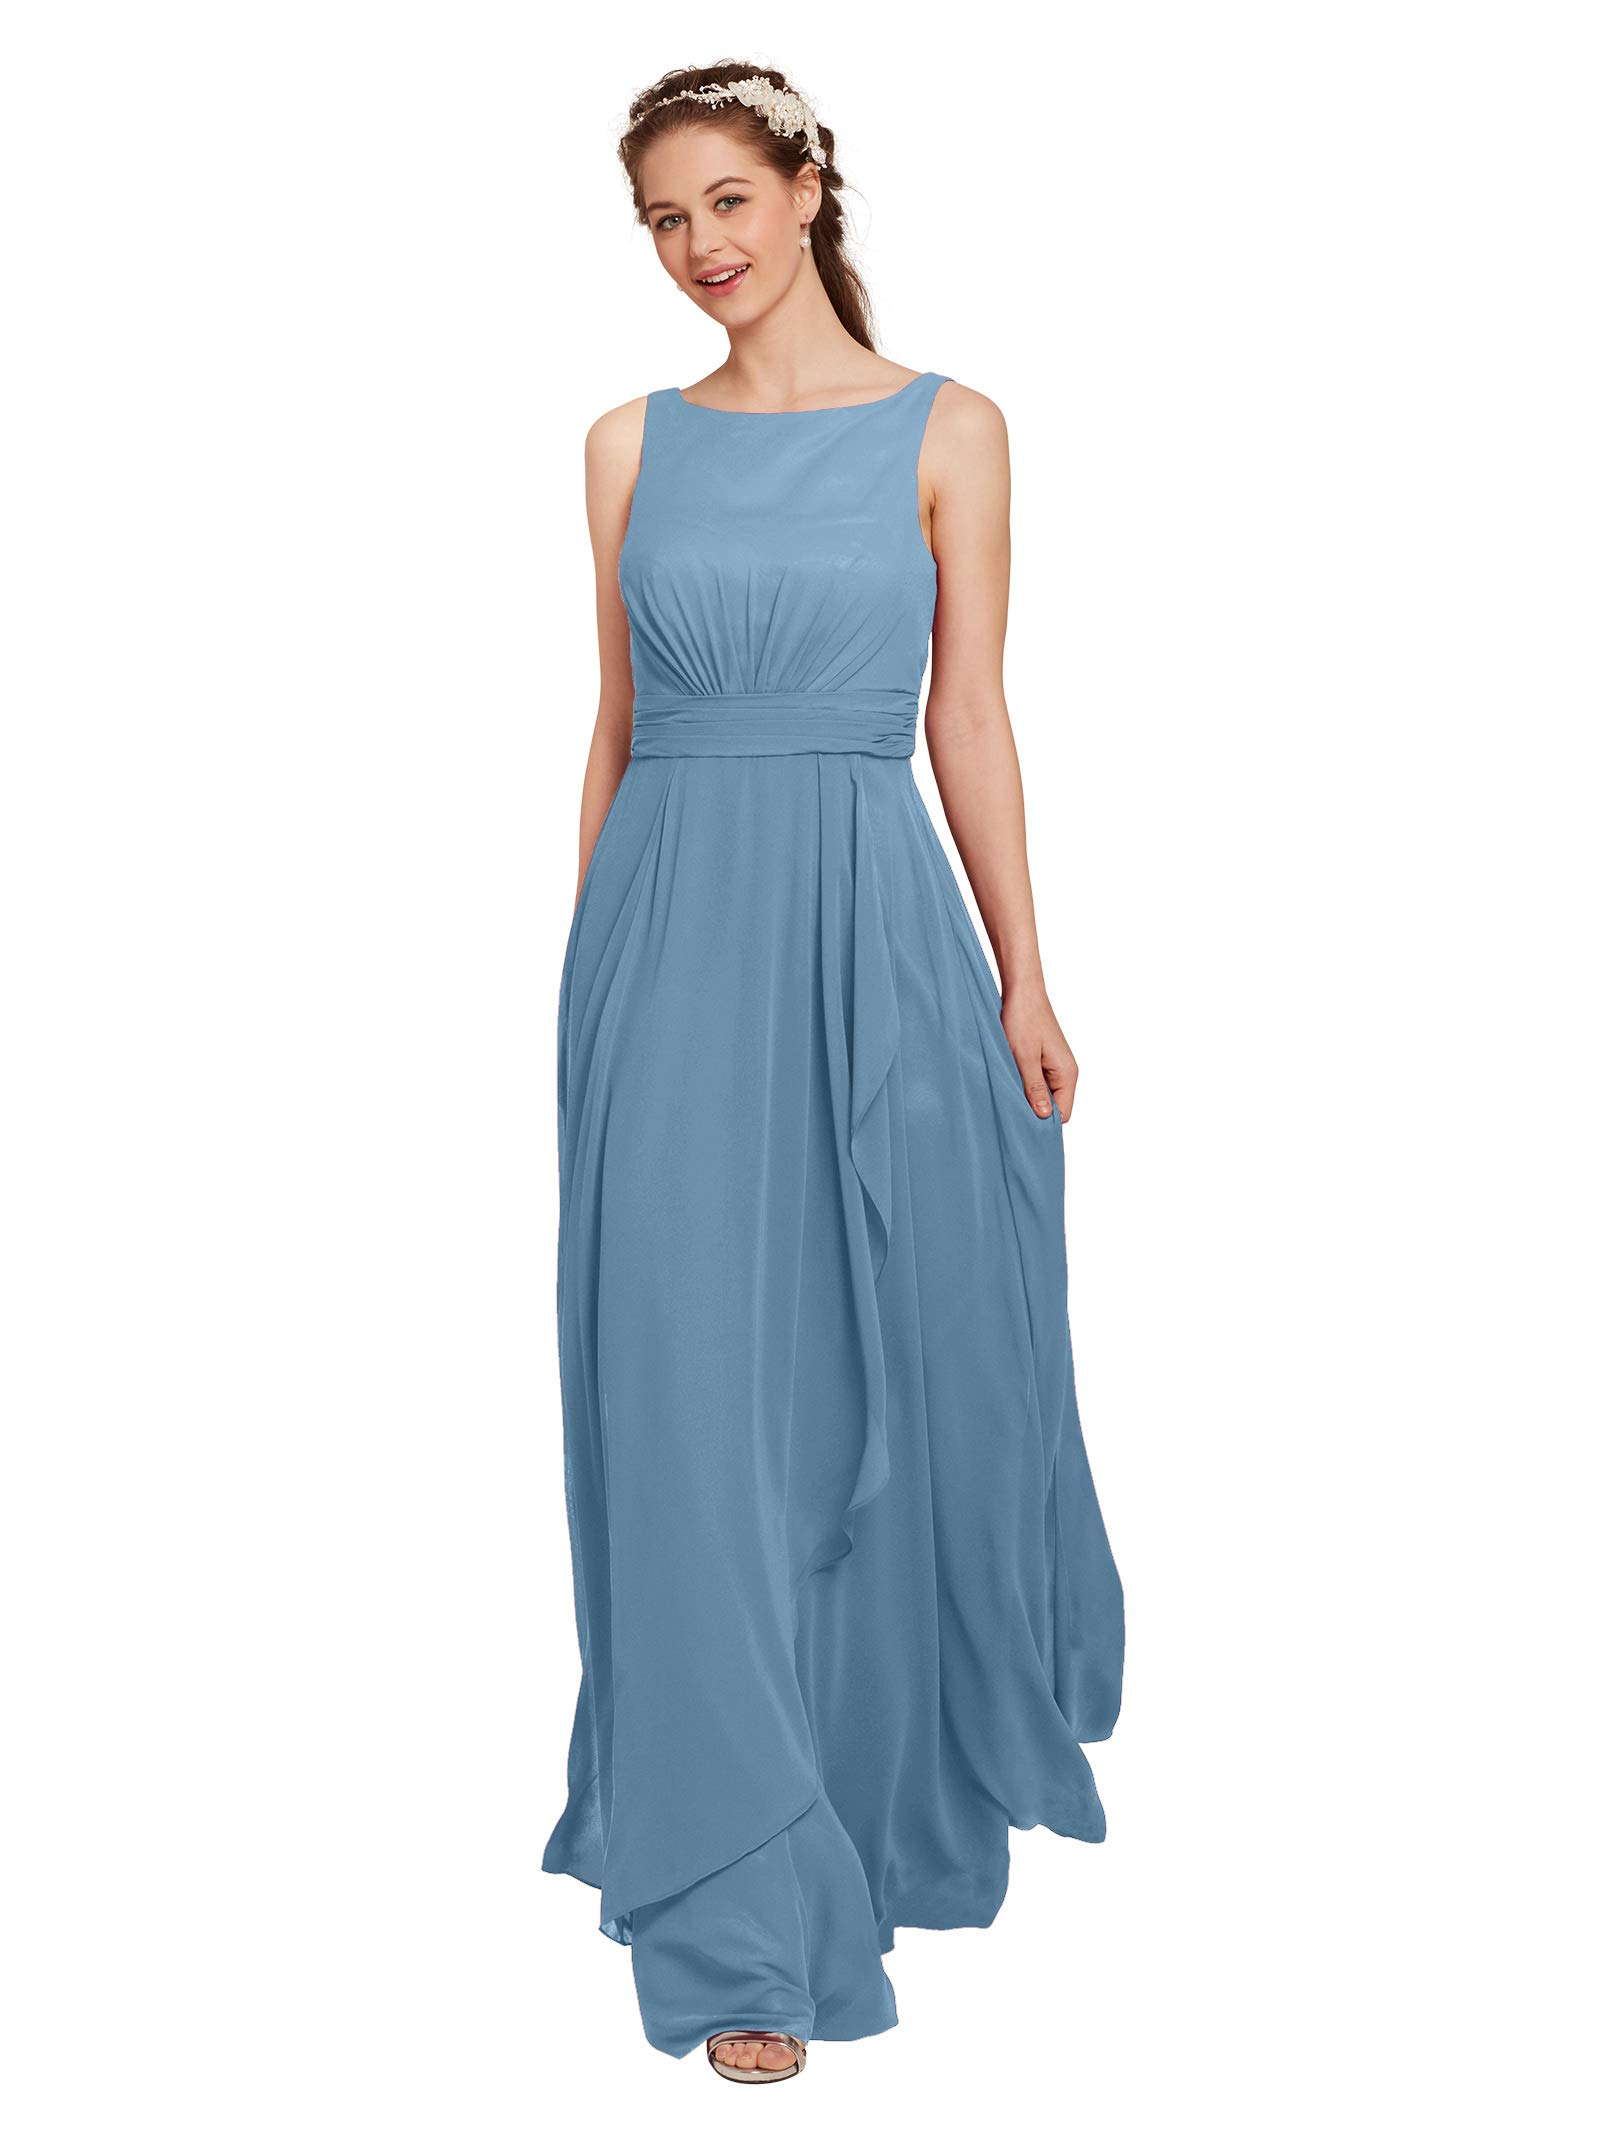 19e3ab2b63acd AW Chiffon Bridesmaid Dress Long Formal Prom Party Evening Maxi Dresses  Sleeveless, Dusty Blue, US14